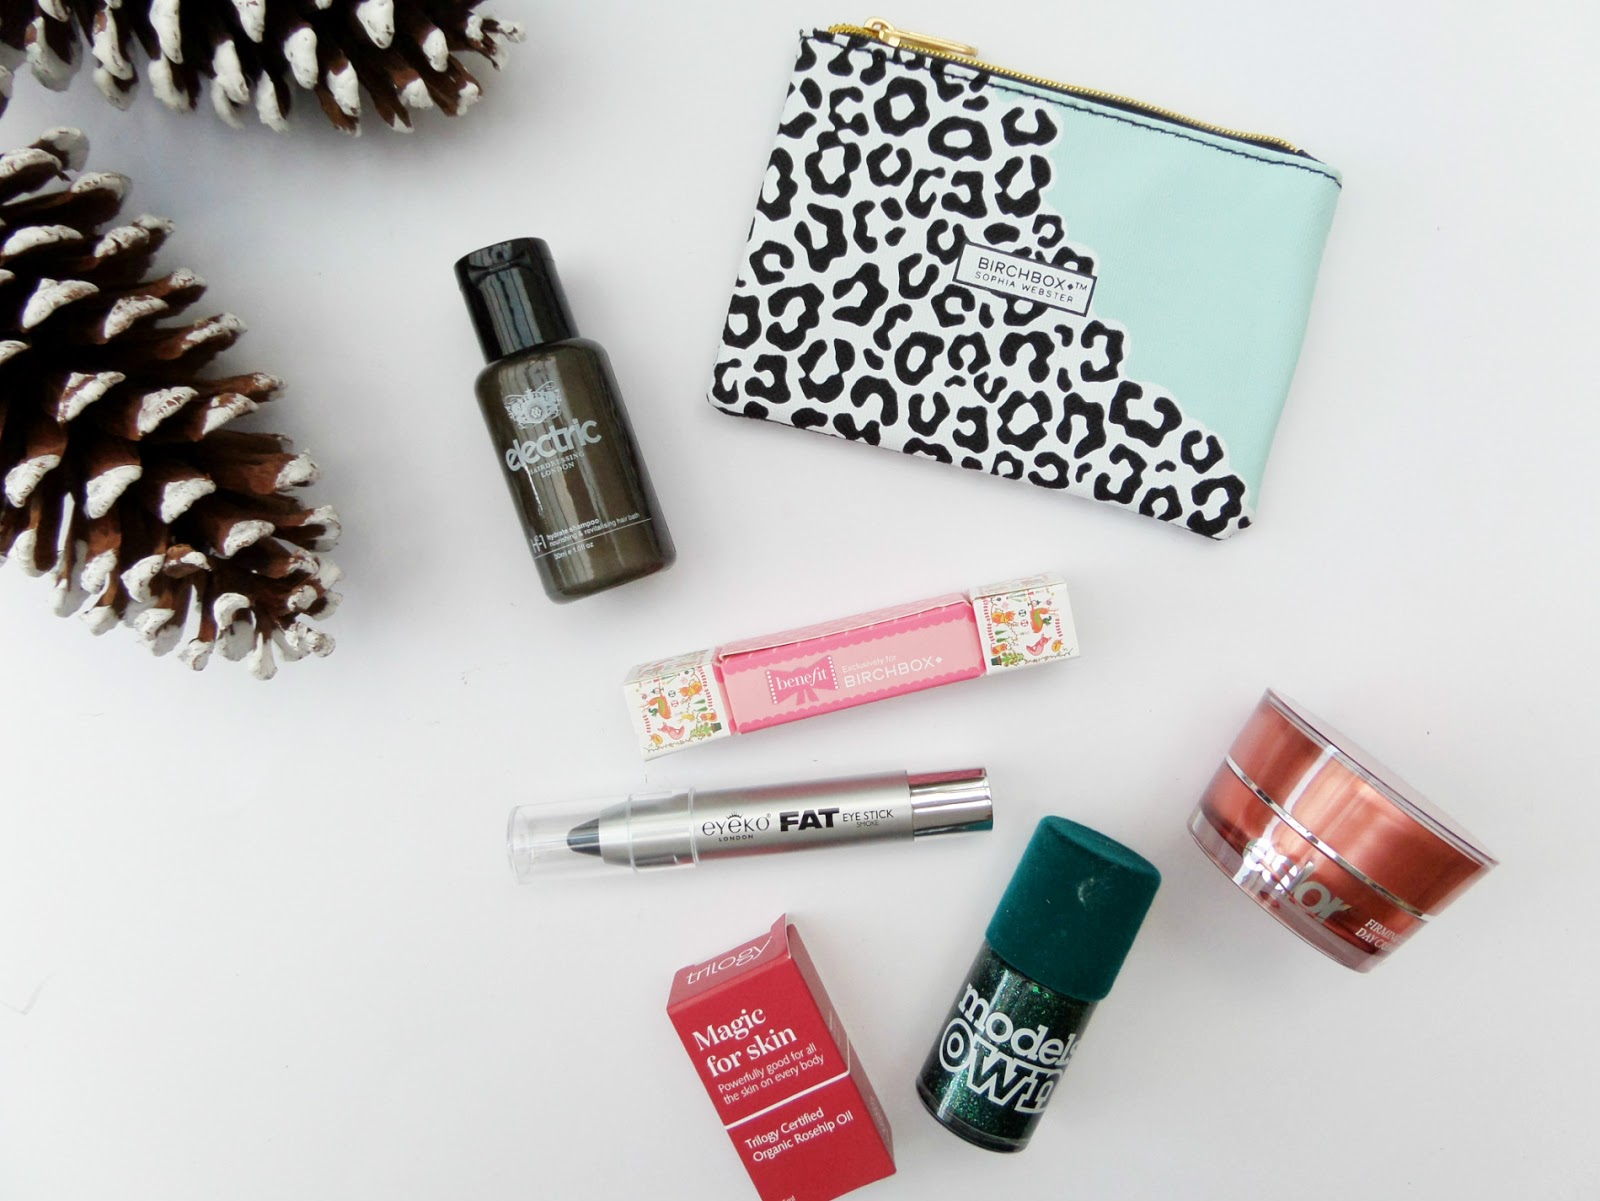 December Birchbox | Sophia Webster Edition Contents